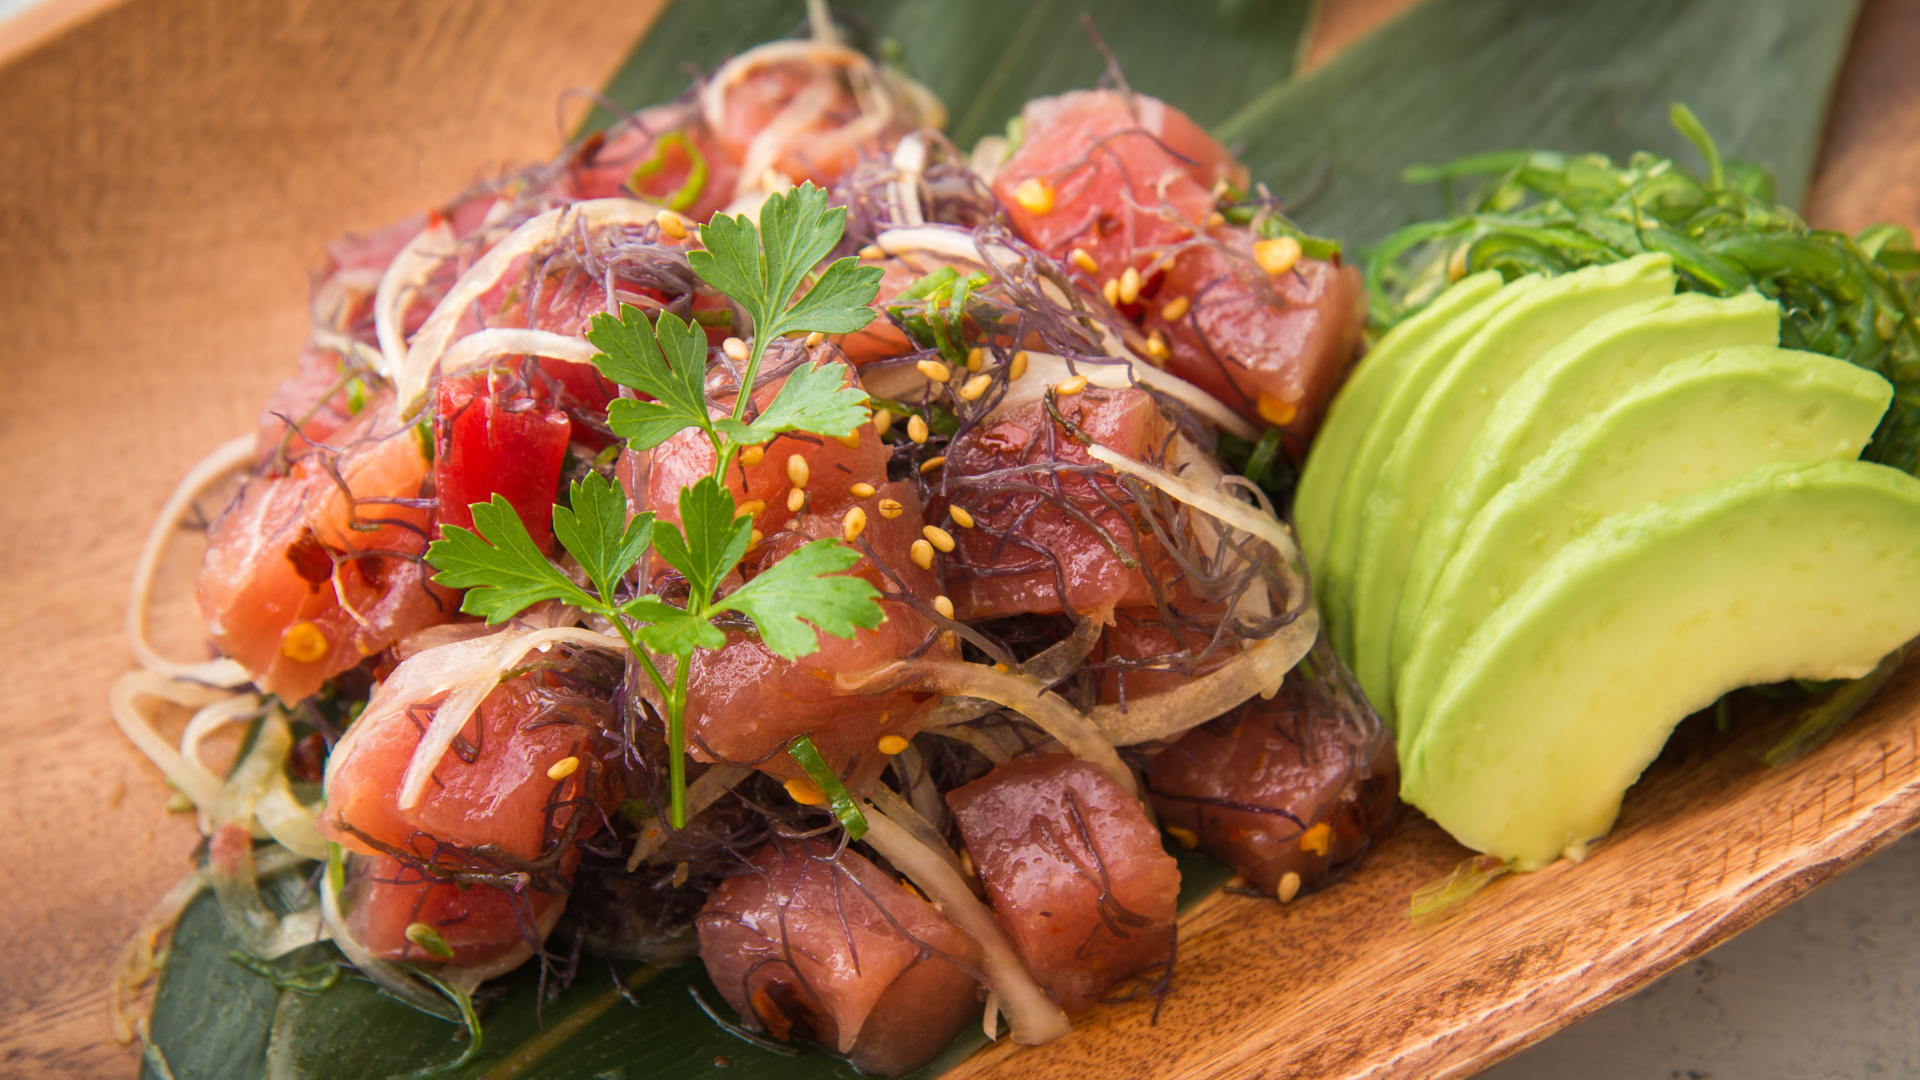 Ahi Poke on our Food Bucket List.